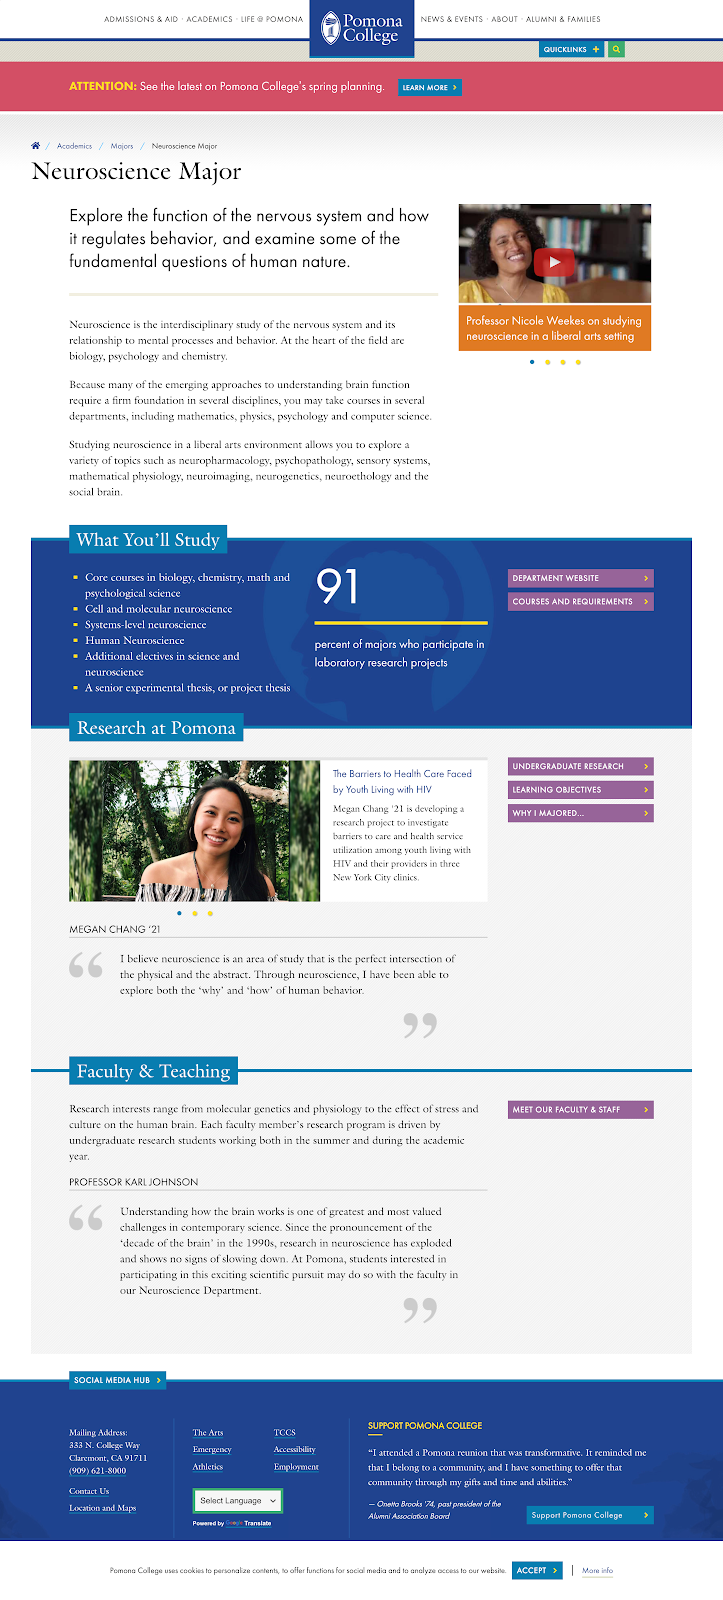 The Neuroscience Major page from the Pomona College website.